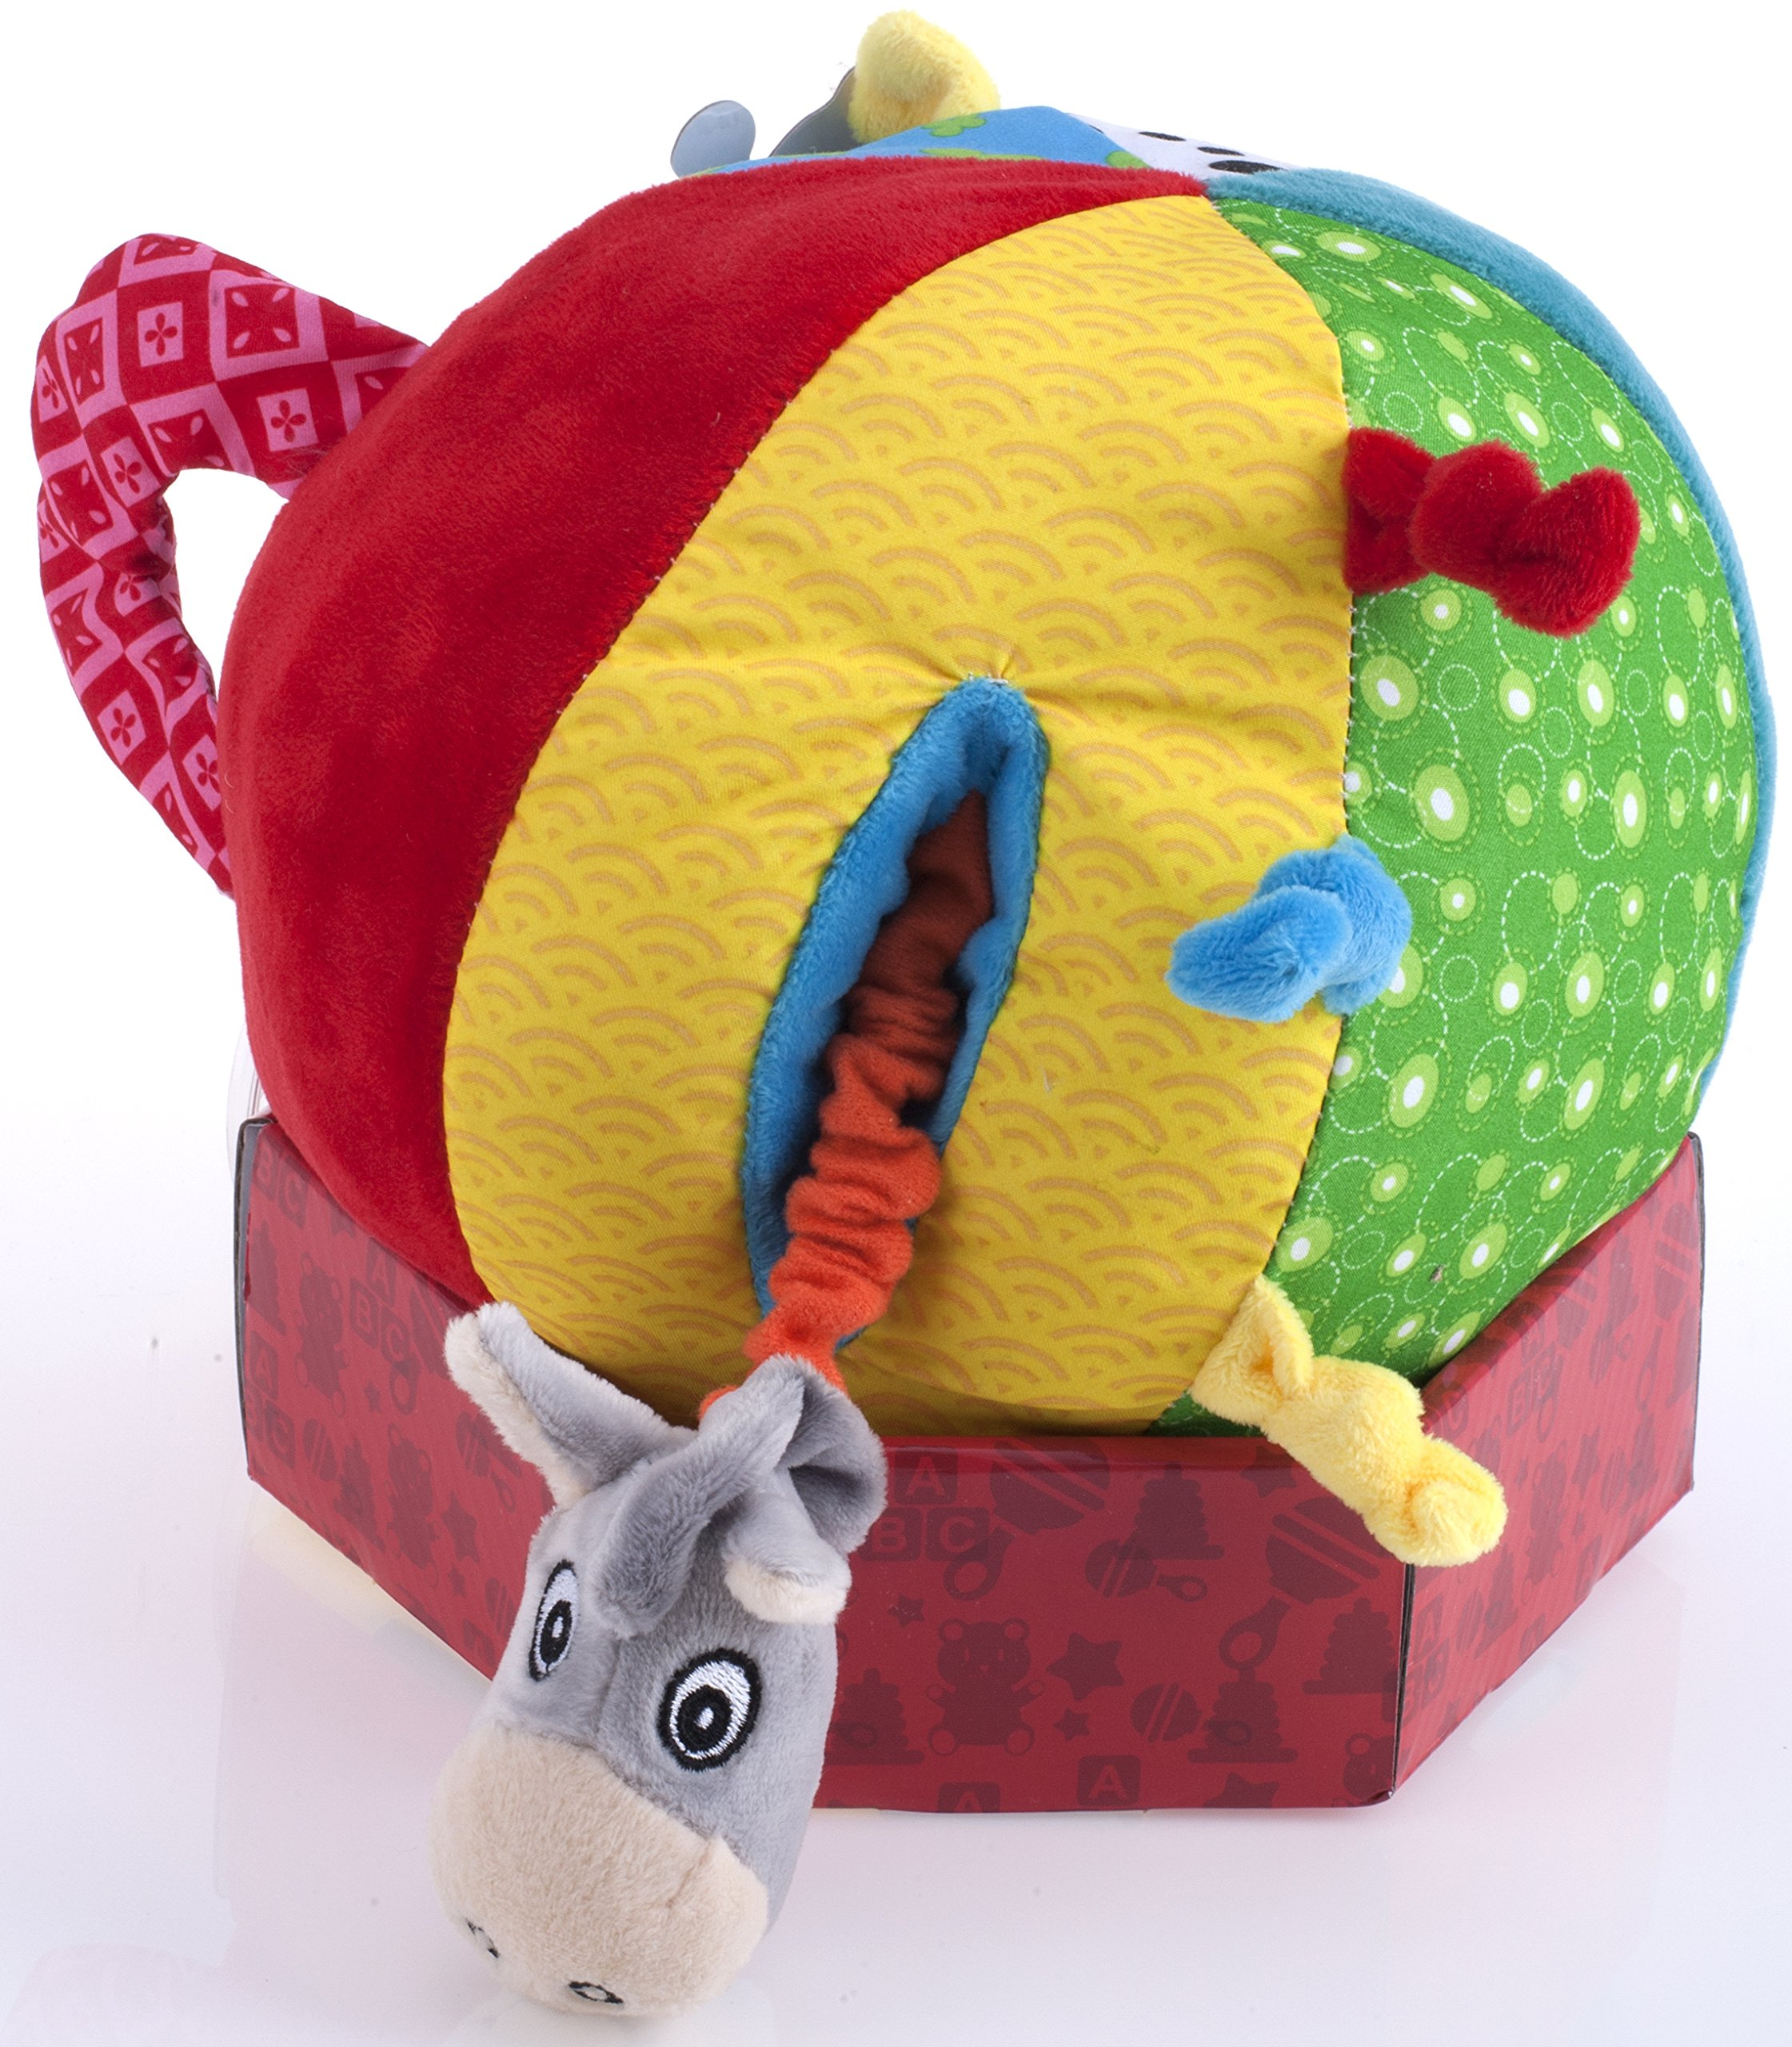 Nuby Squeak Rattle N' Roll Plush Interactive Toy by Nuby (Image #4)